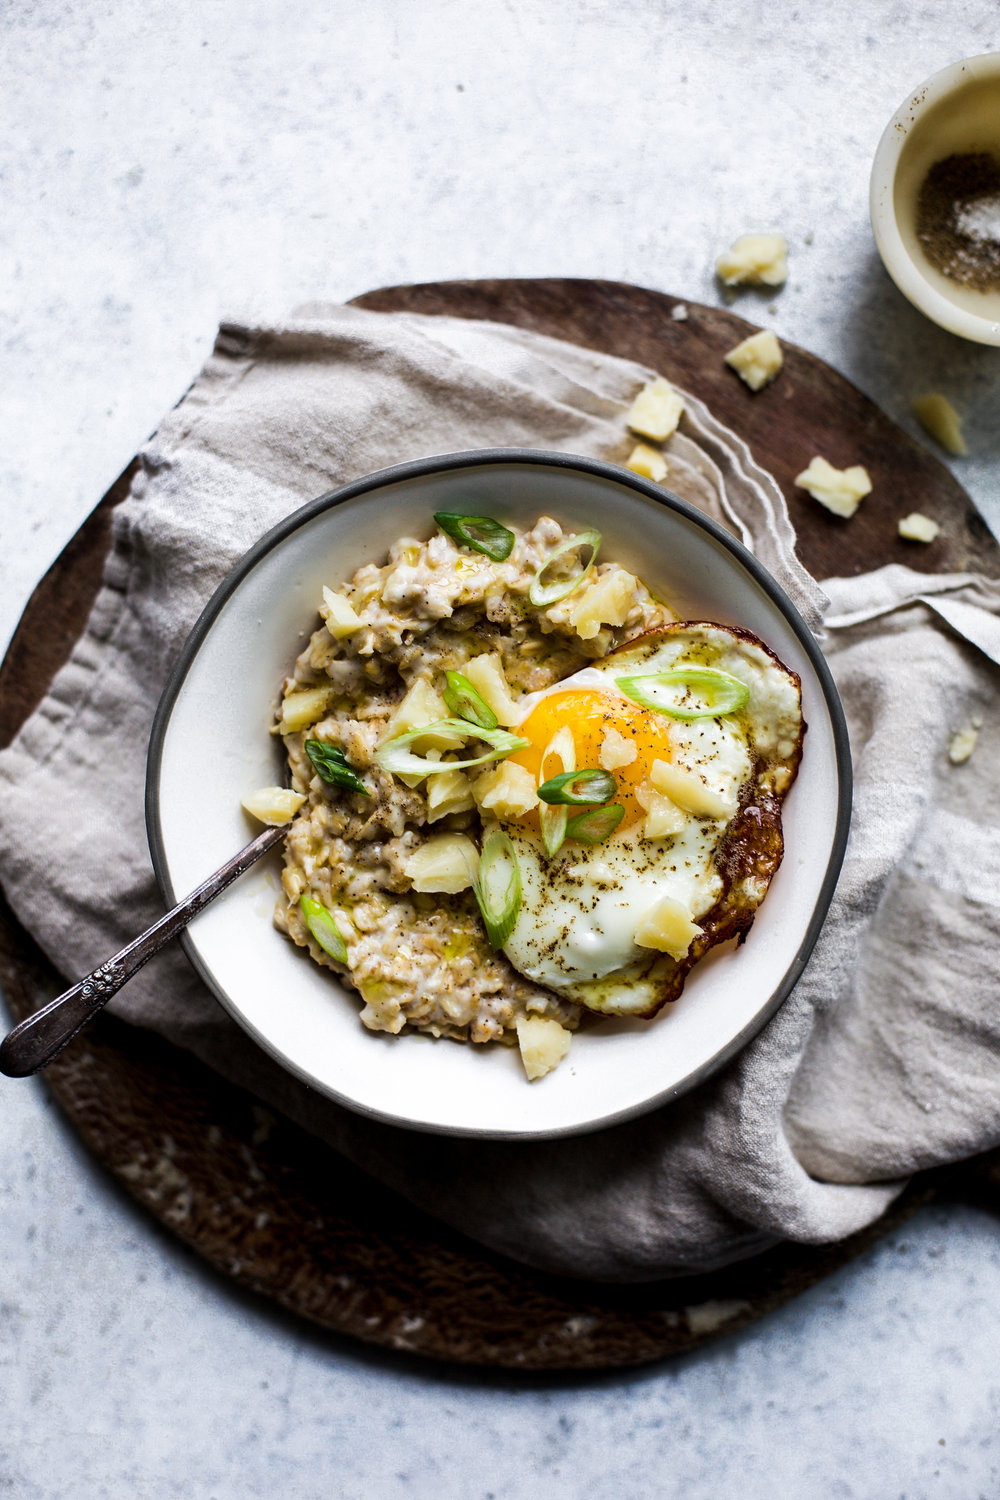 Savory Parmesan and Olive Oil Oatmeal: My Diary of Us